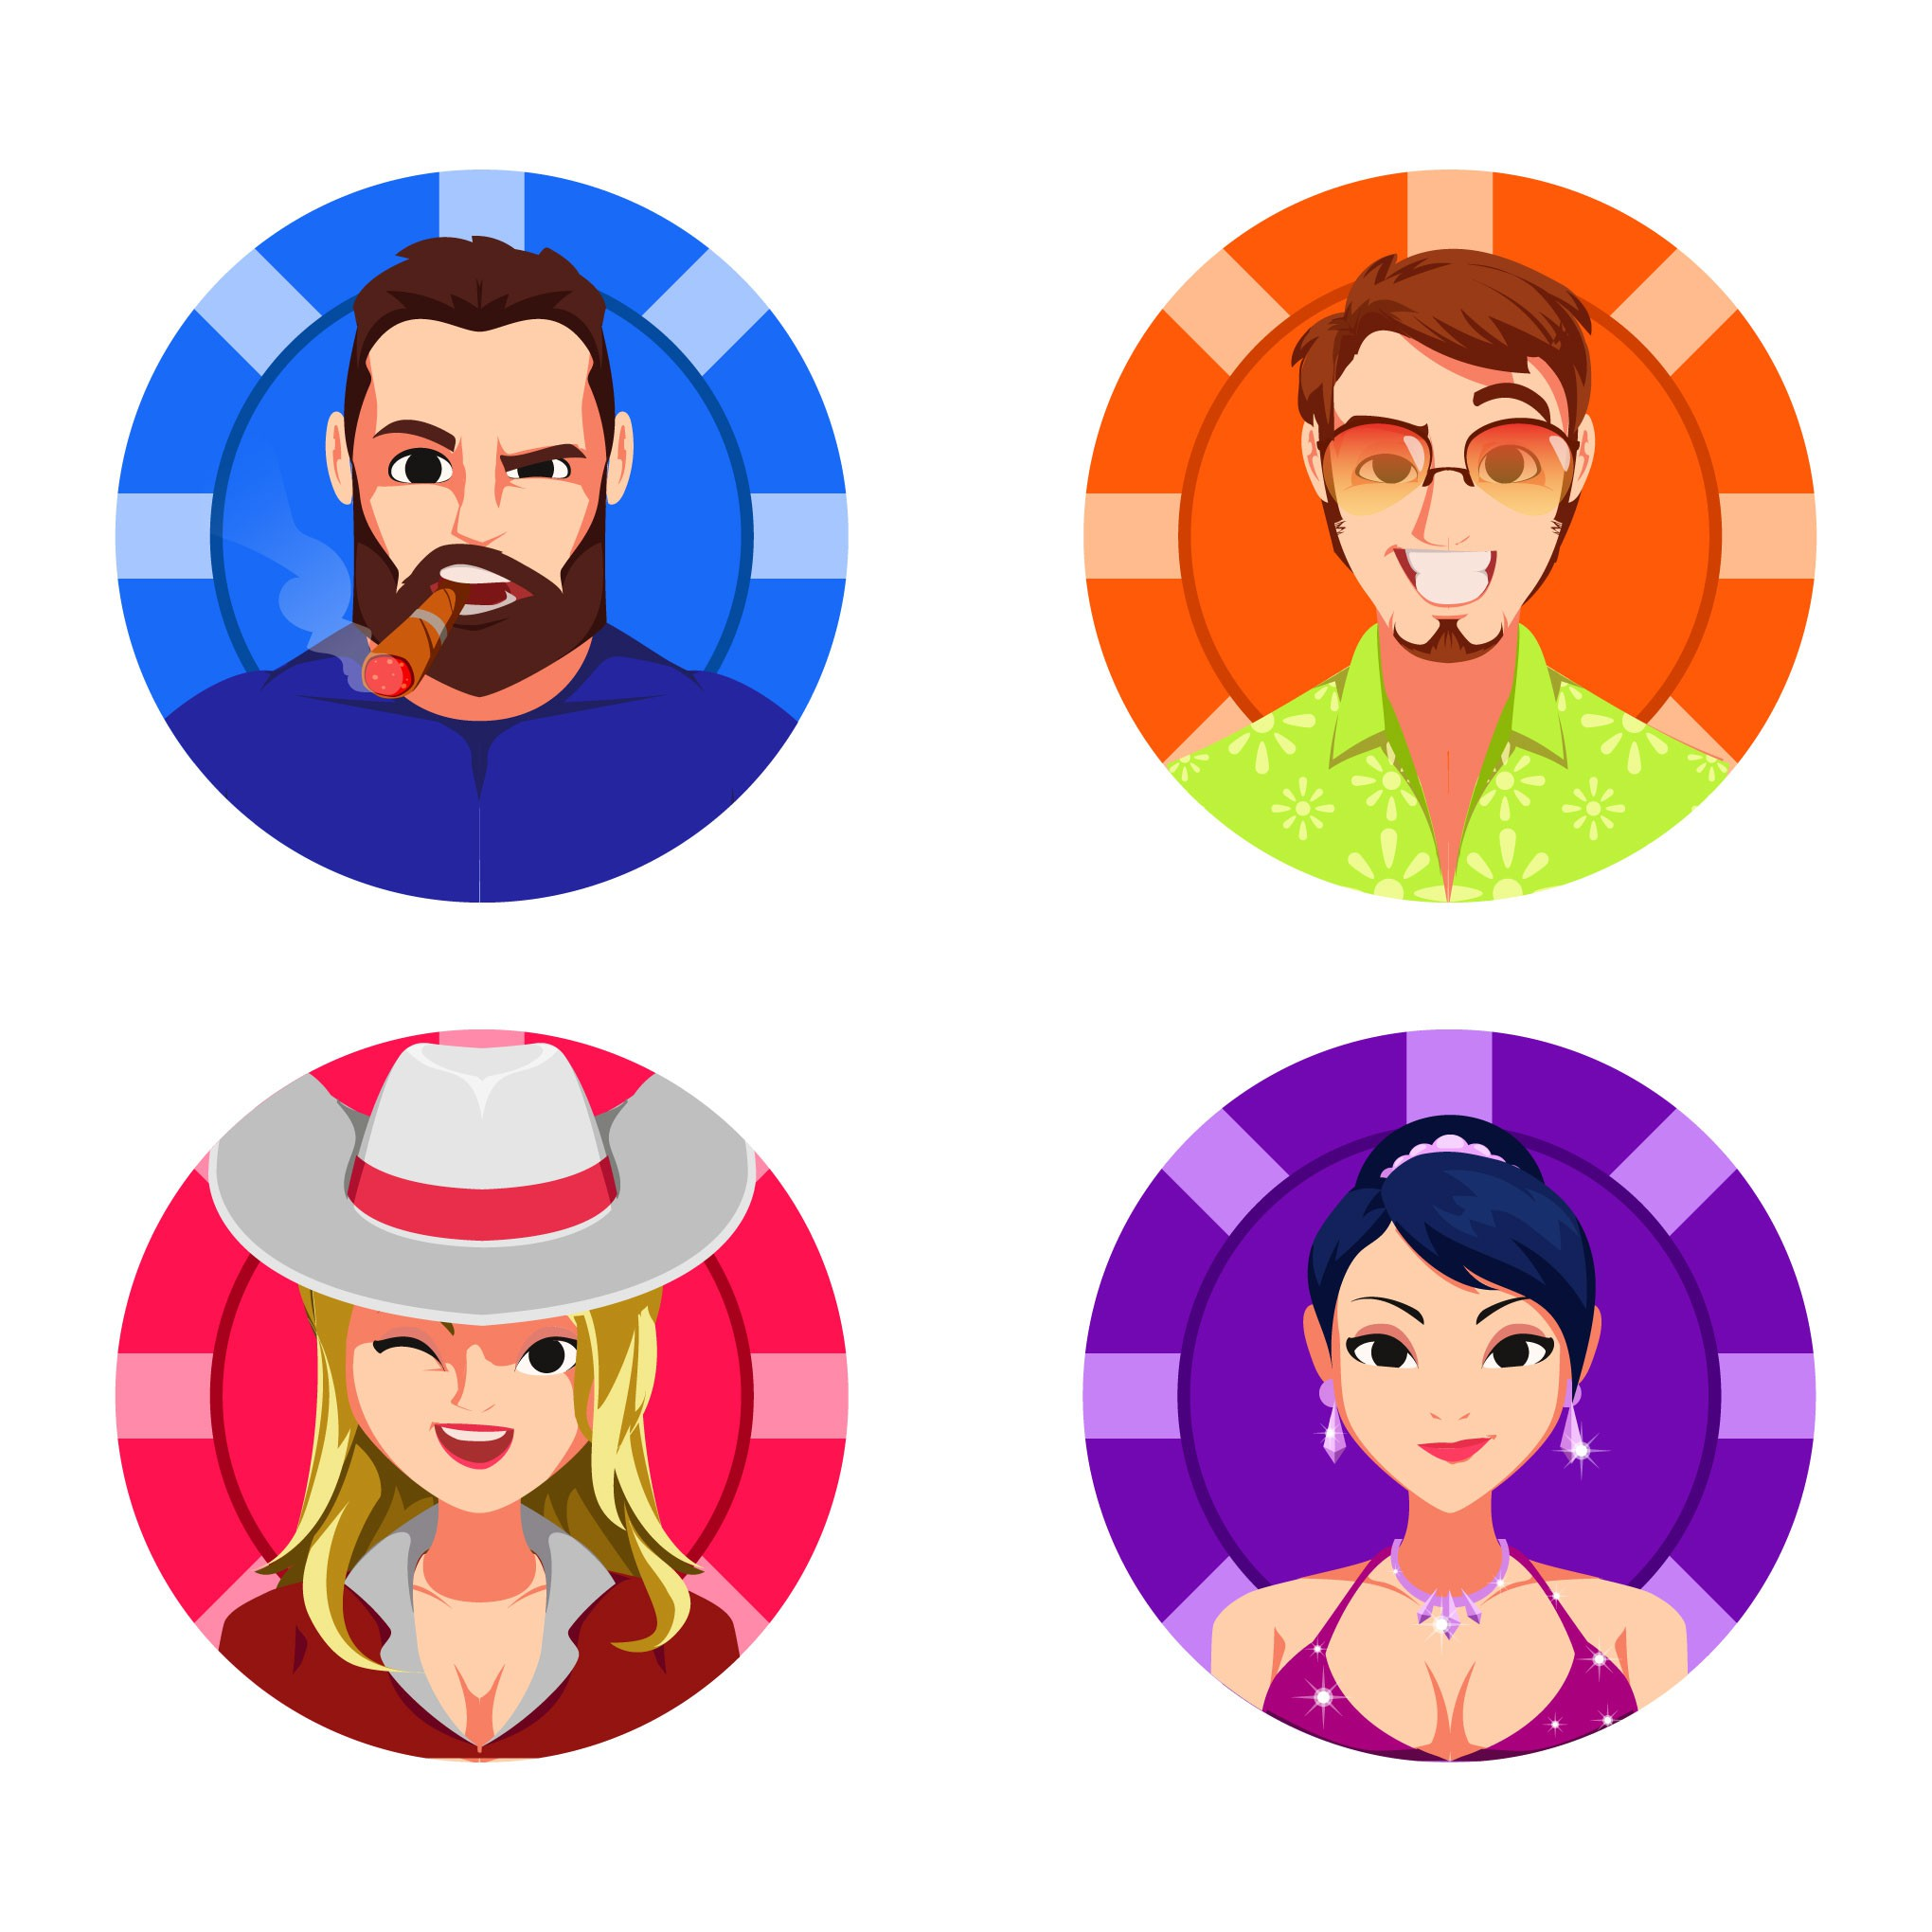 4 Characters for my Poker Applications